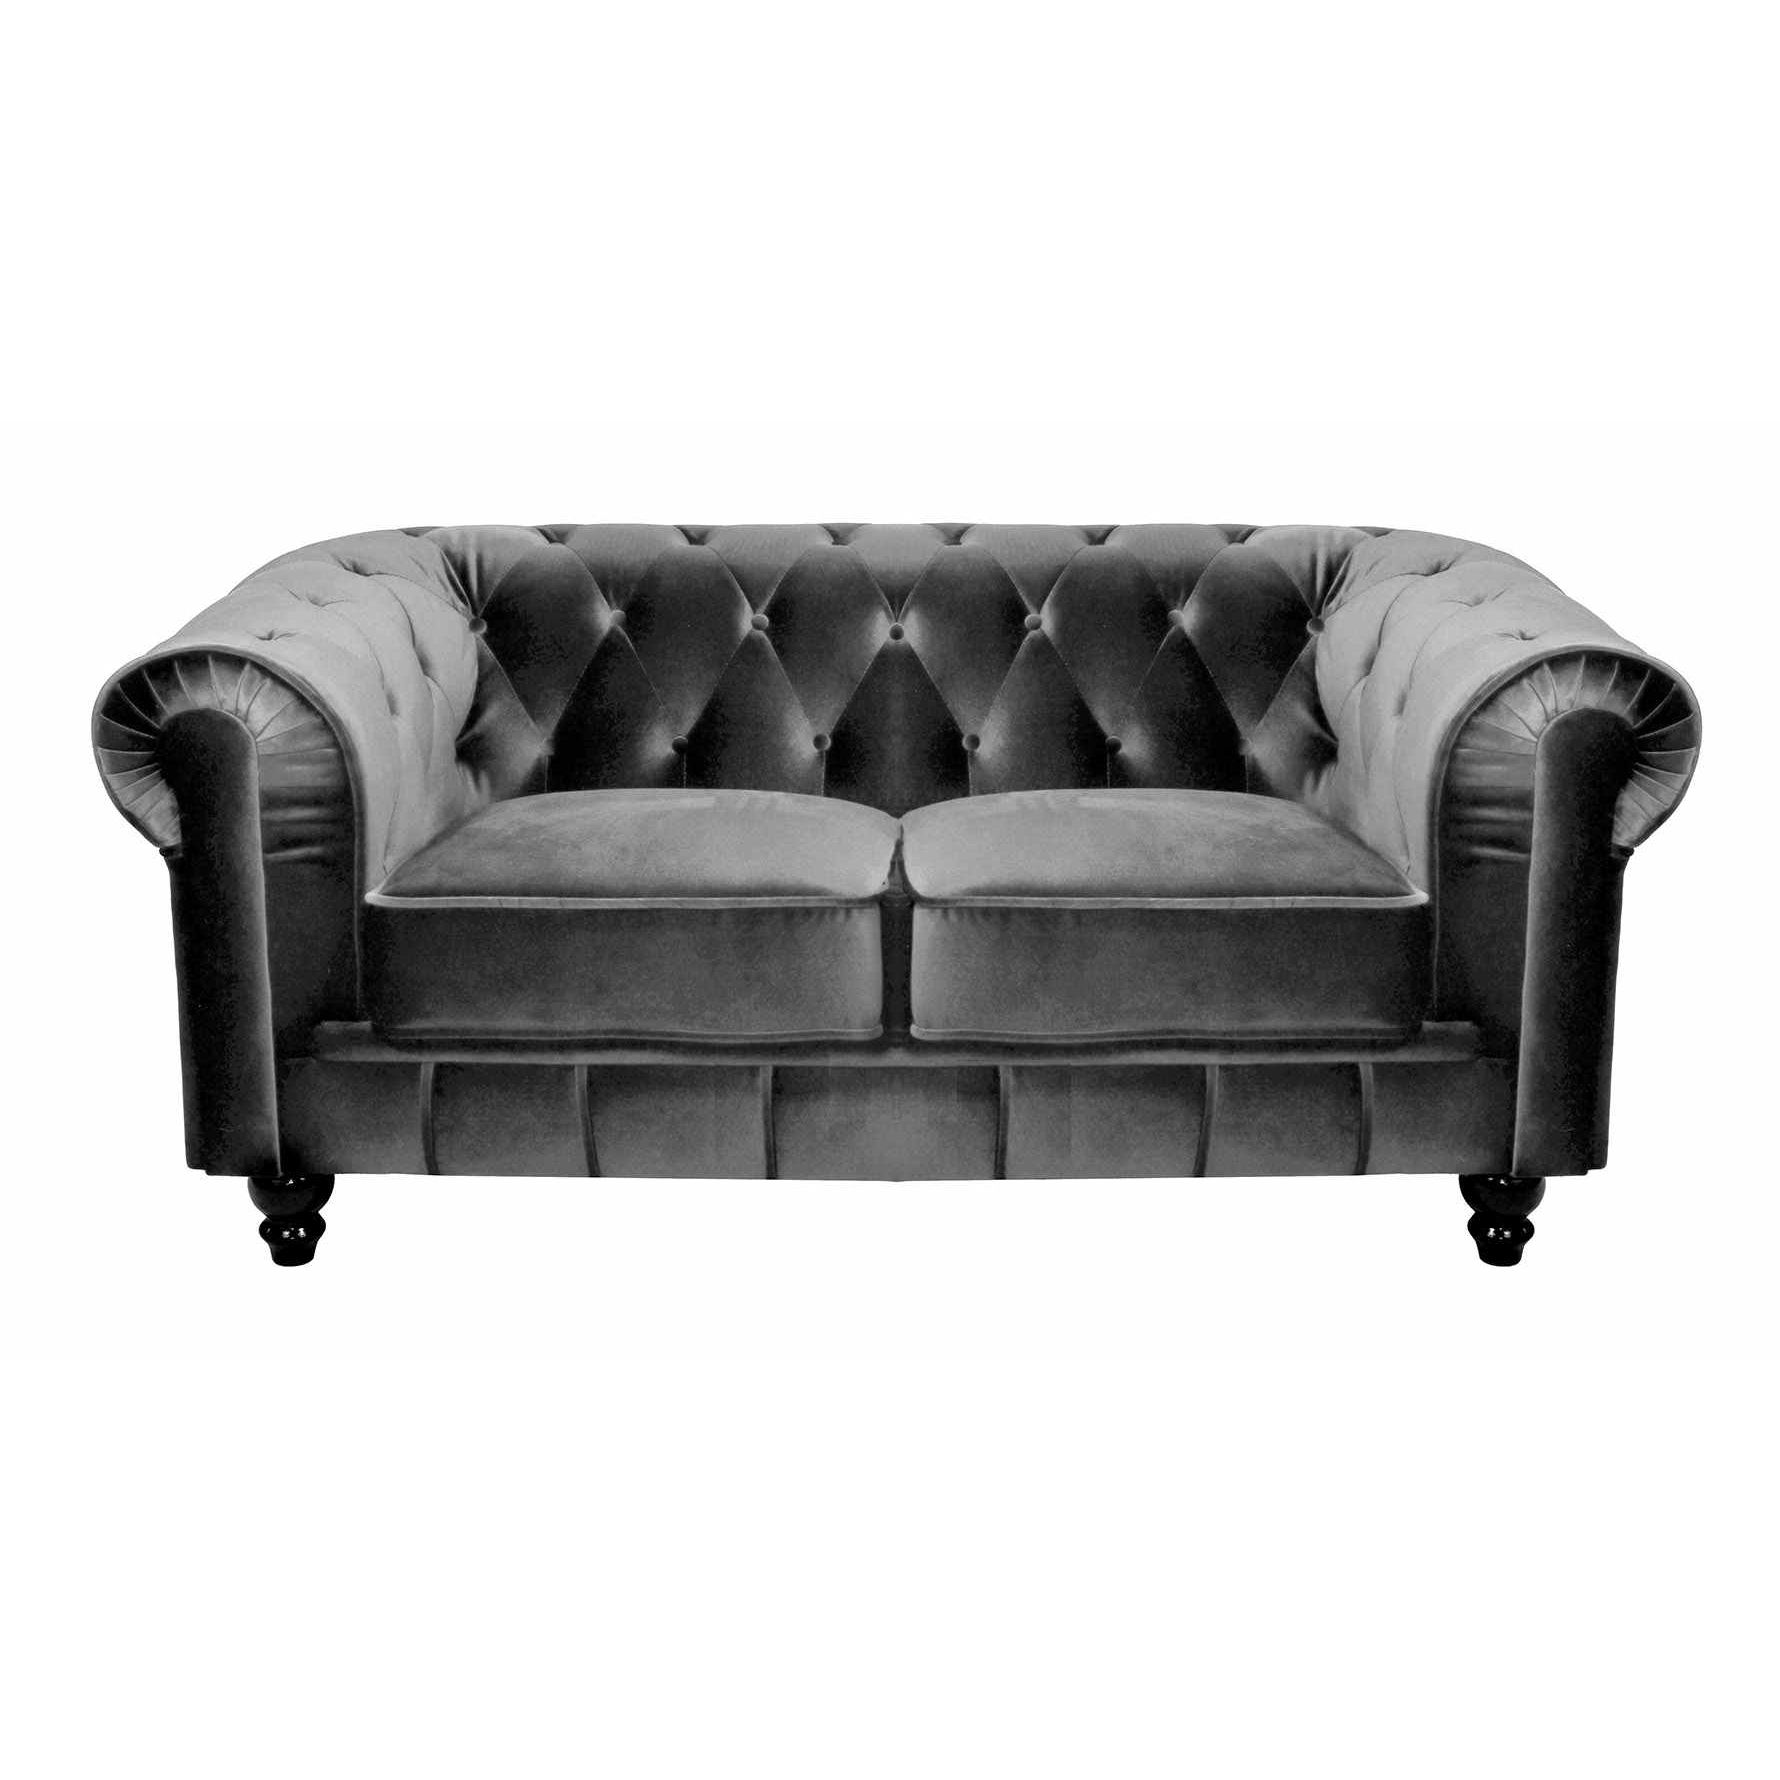 deco in paris canape 2 places velours gris chesterfield